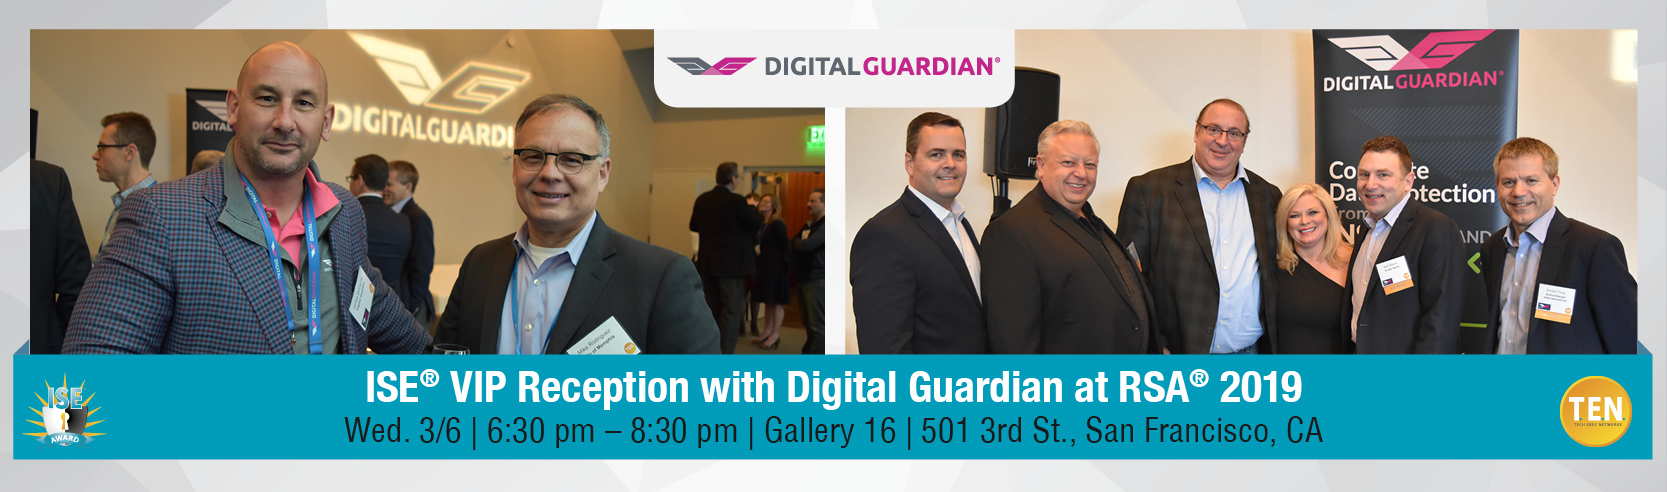 ISE® VIP Reception with Digital Guardian